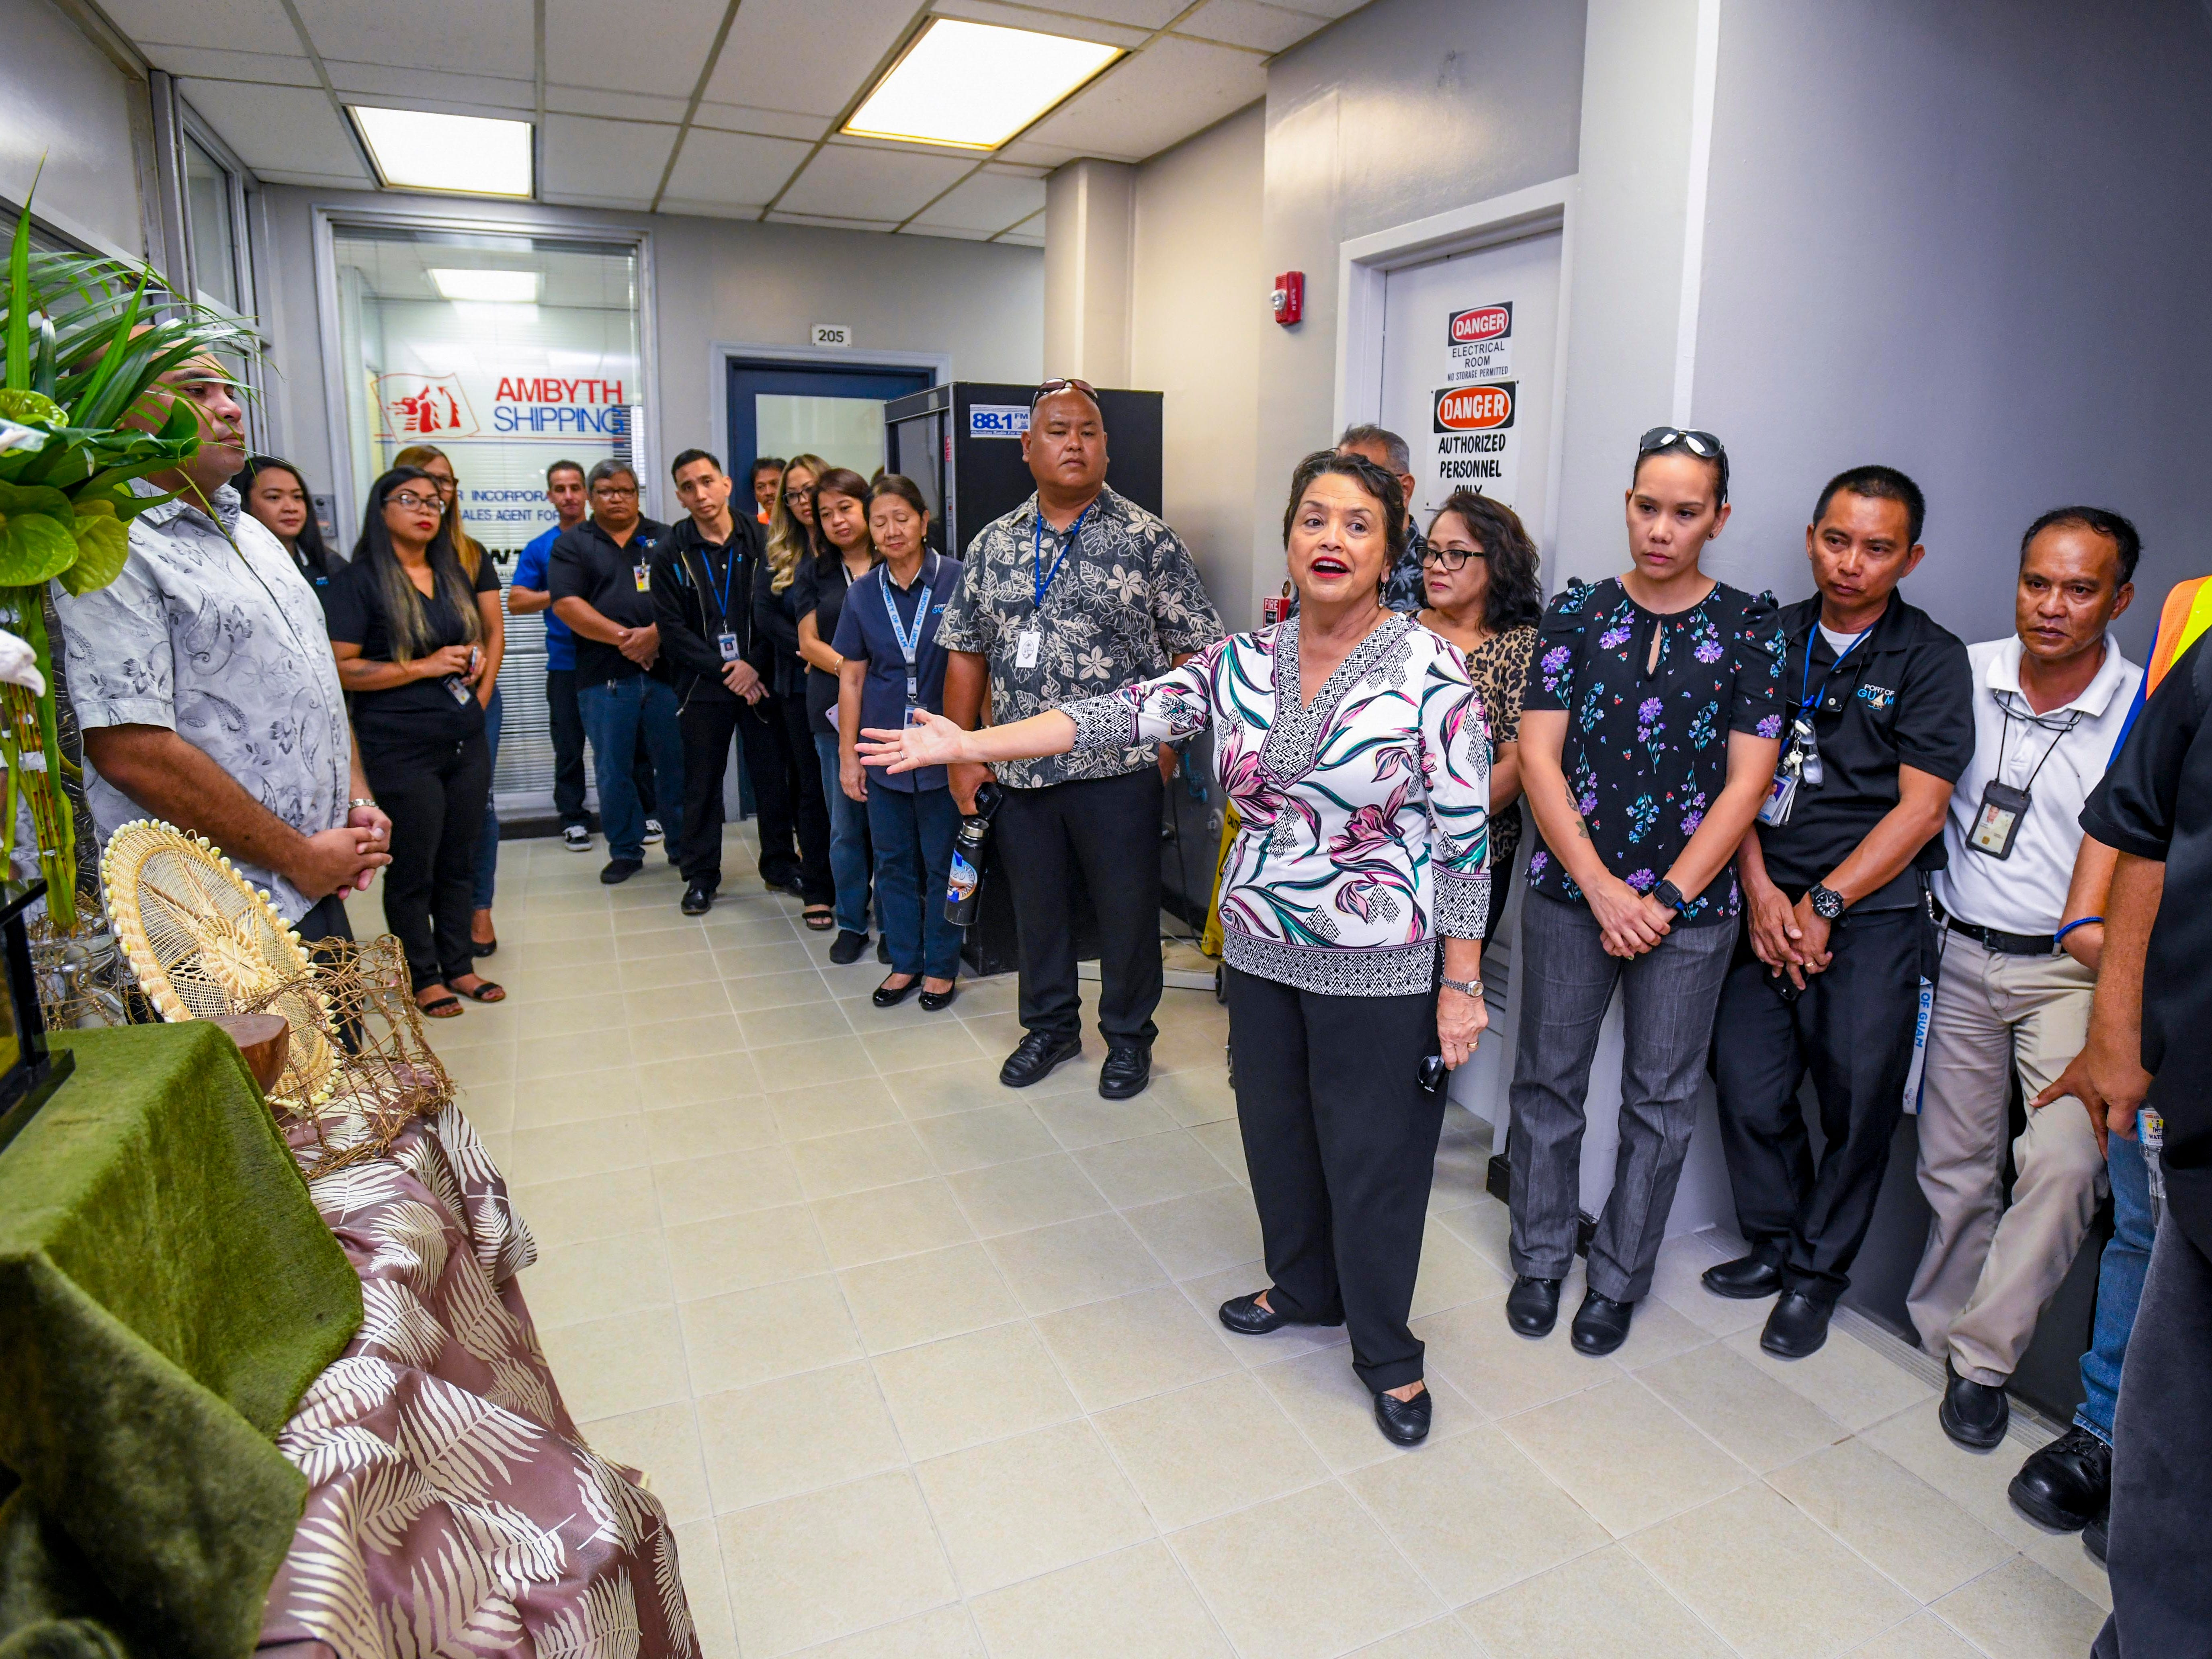 Gov. Lou Leon Guerrero addresses port employees while touring the administrative offices at the Jose D. Leon Guerrero Commercial Port in Piti on Wednesday, March 13, 2019.